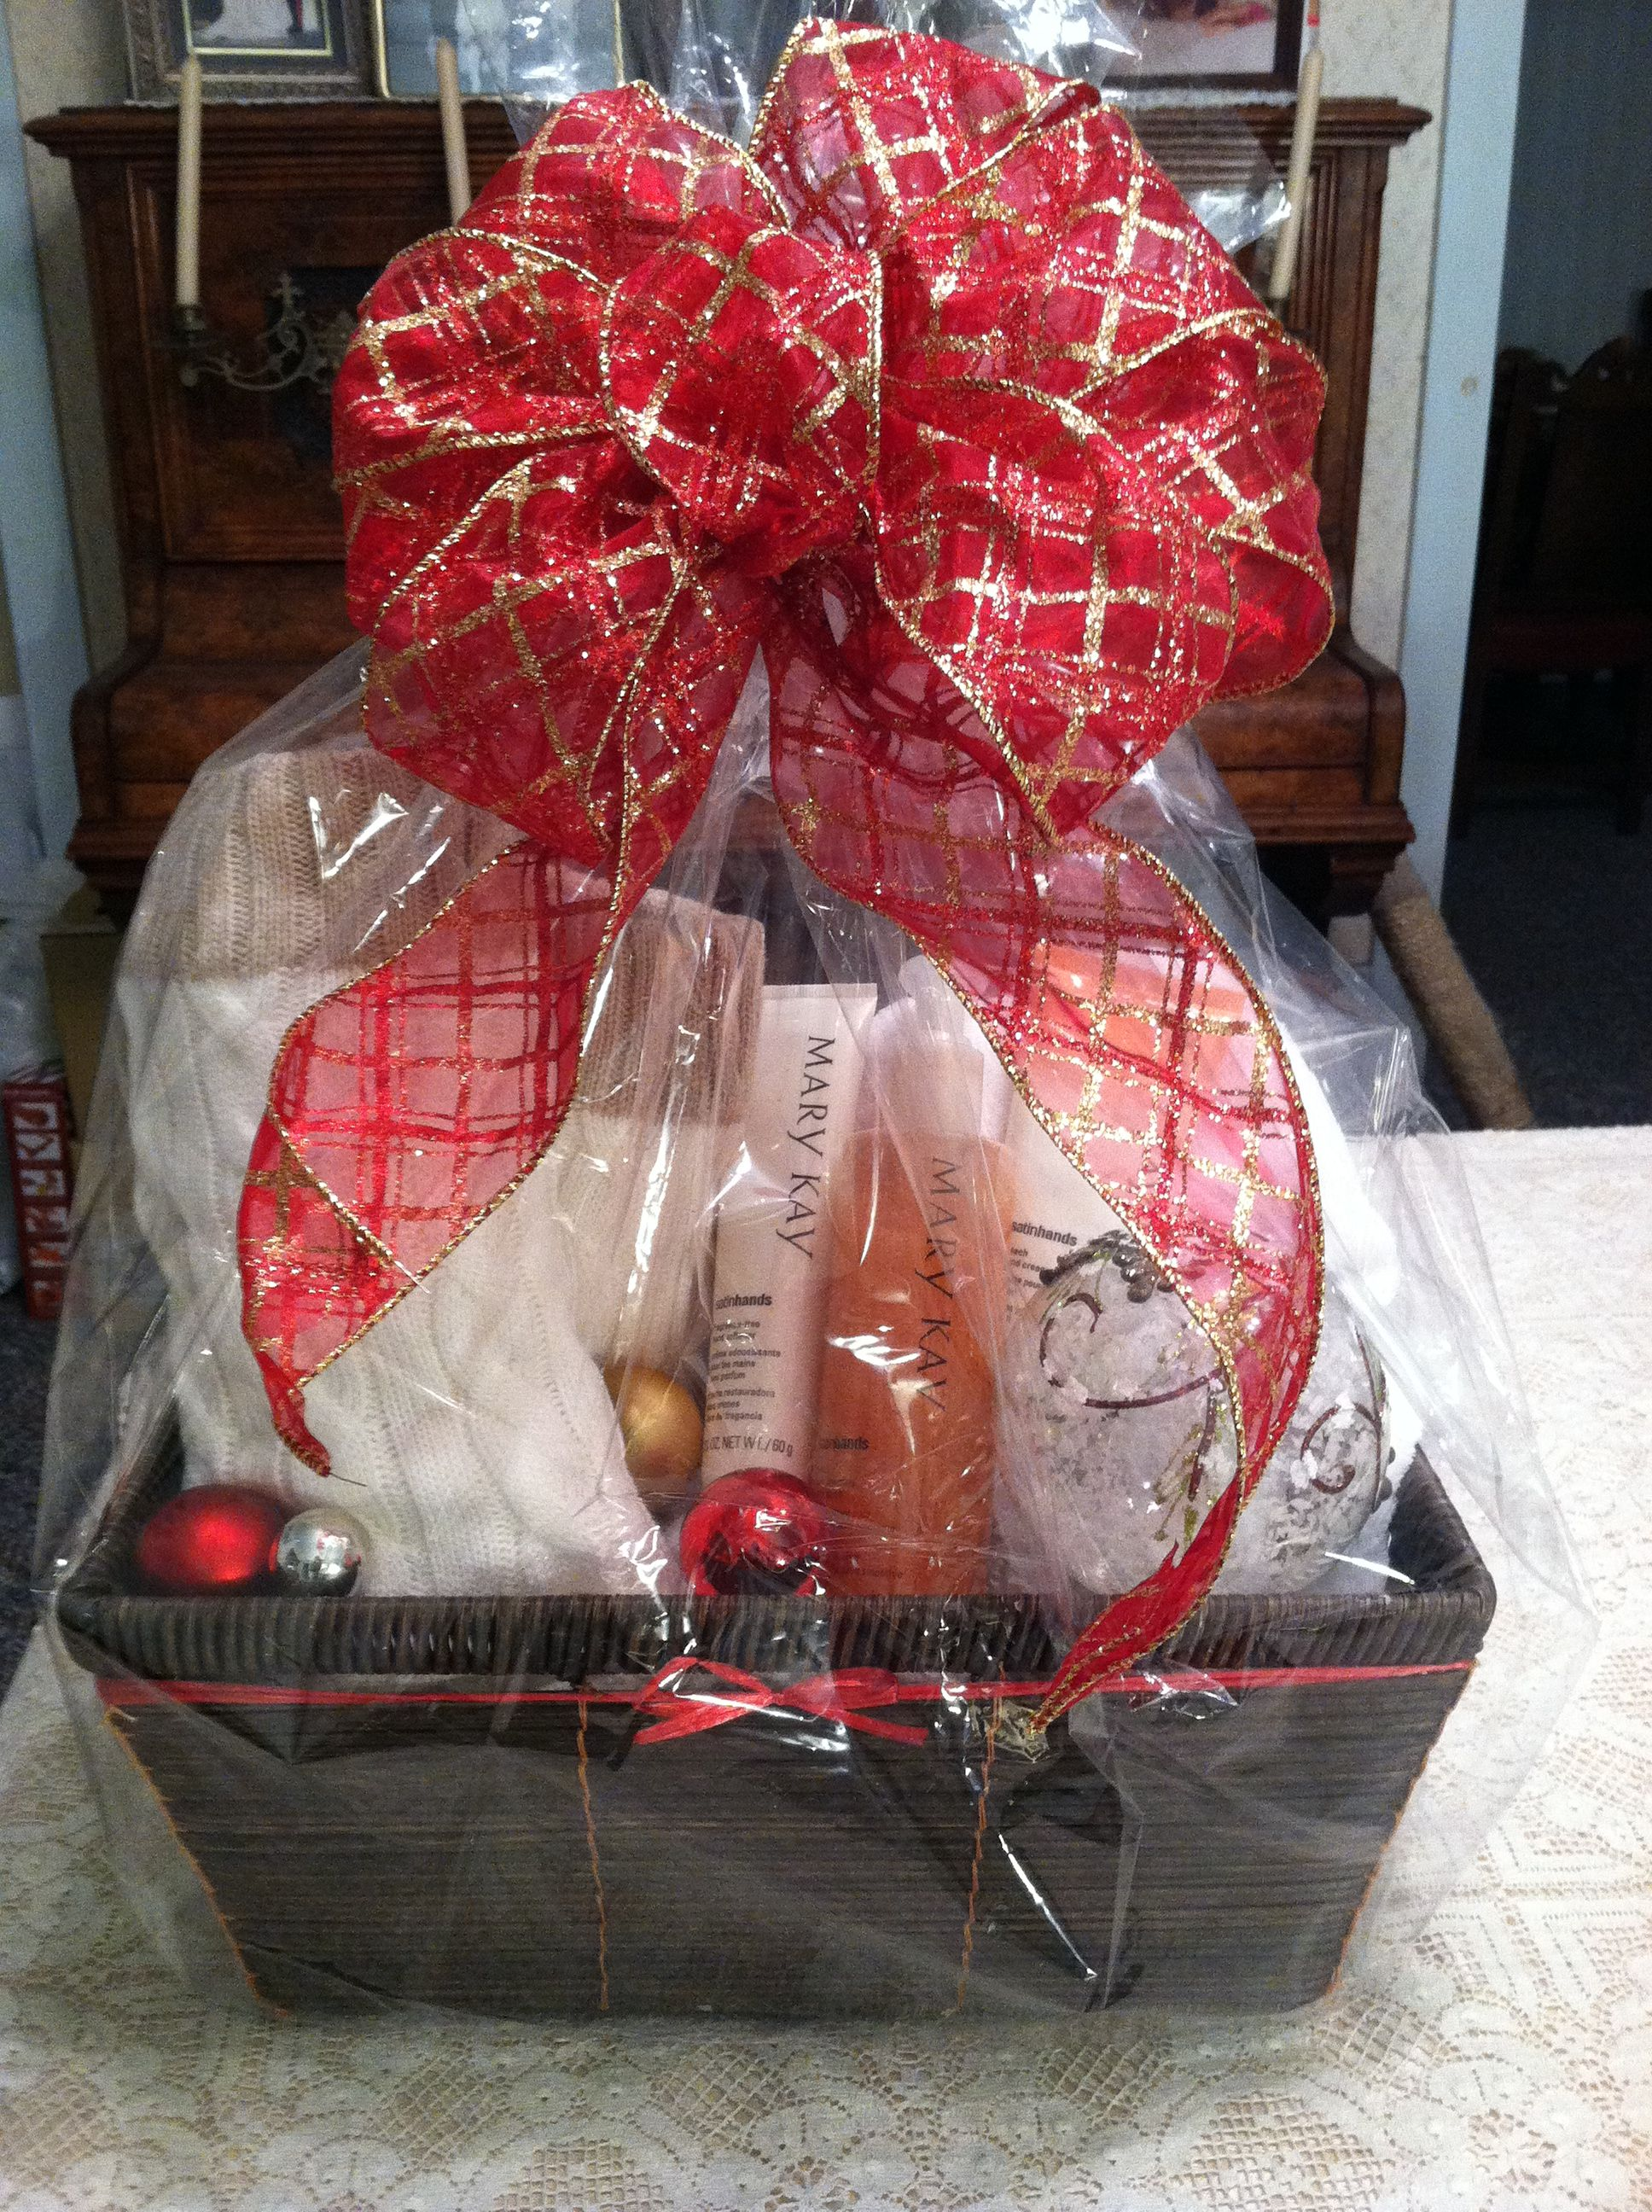 Gift wrapping idea gift wrapping ideas pinterest mary kay mary kay satin hands gift basket with cello wrap peach vanilla sugar or fragrance free negle Images